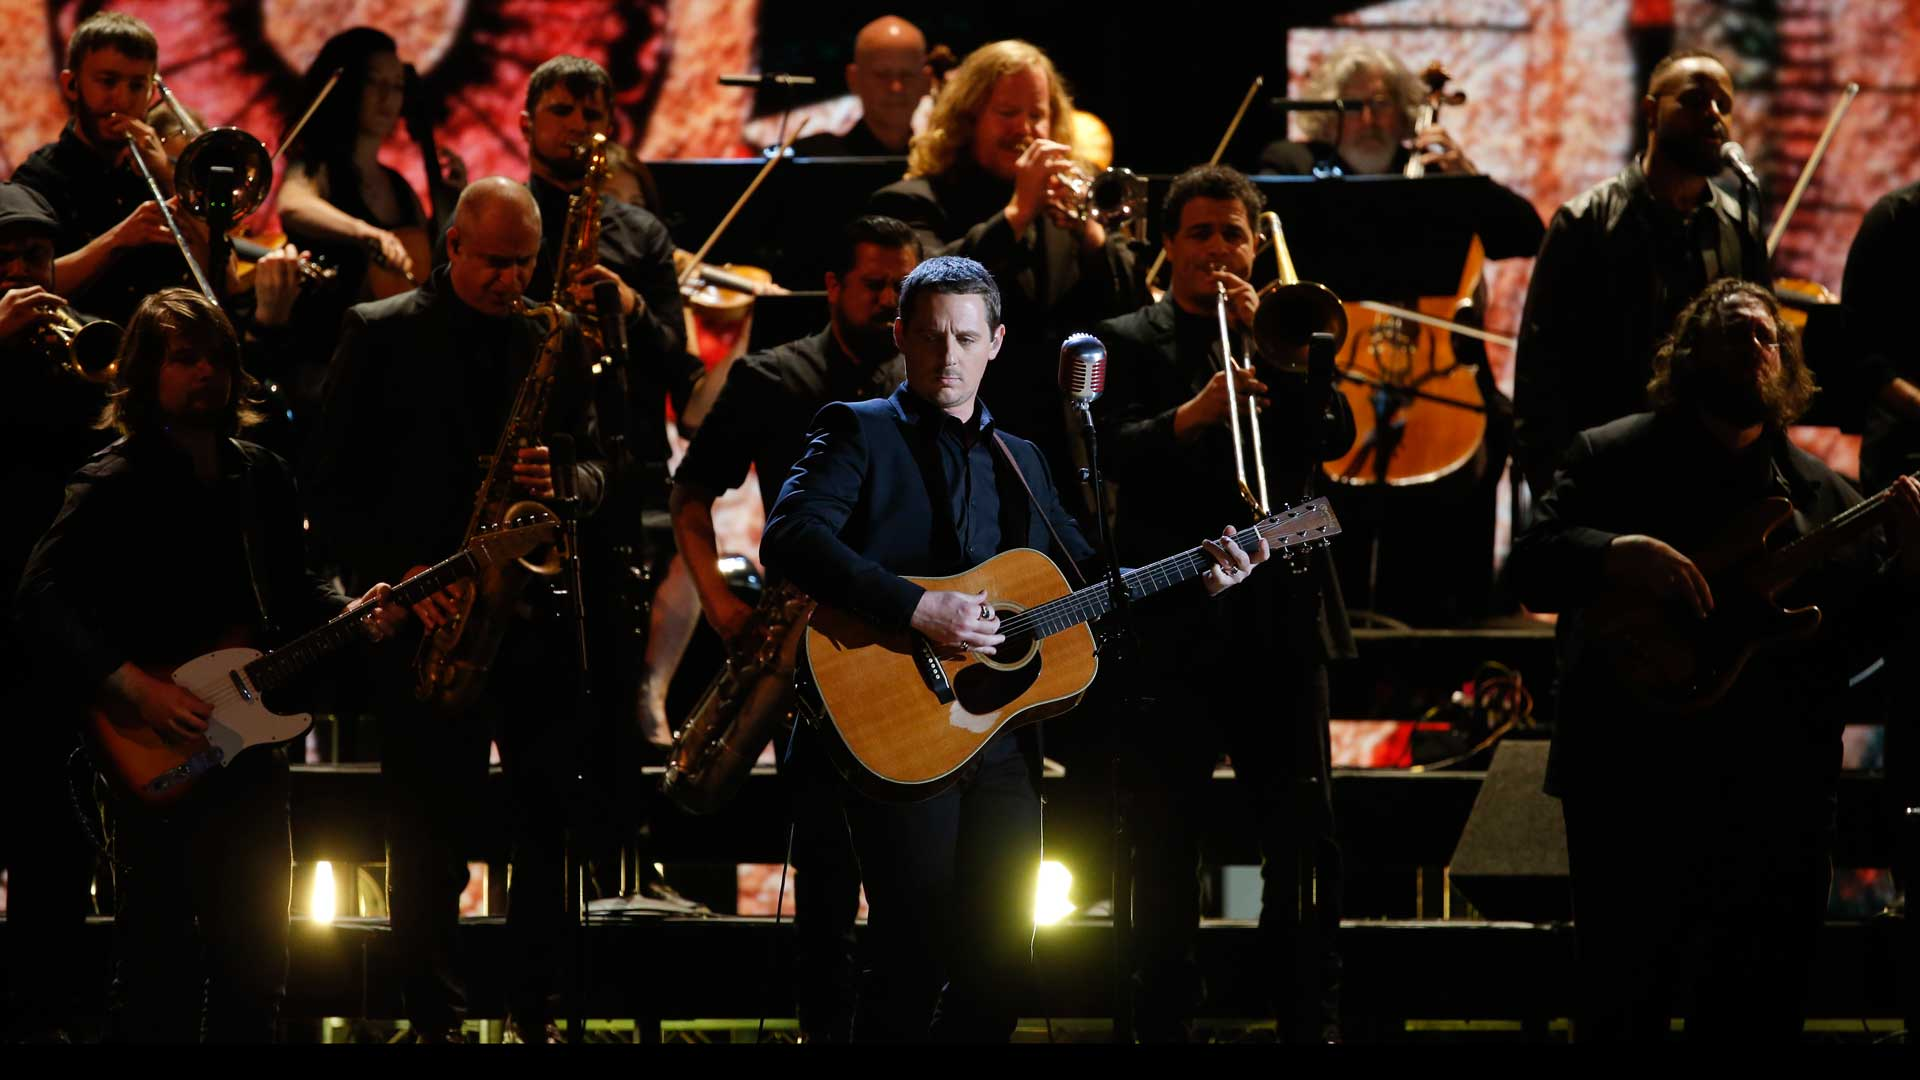 Sturgill Simpson and The Dap-Kings perform